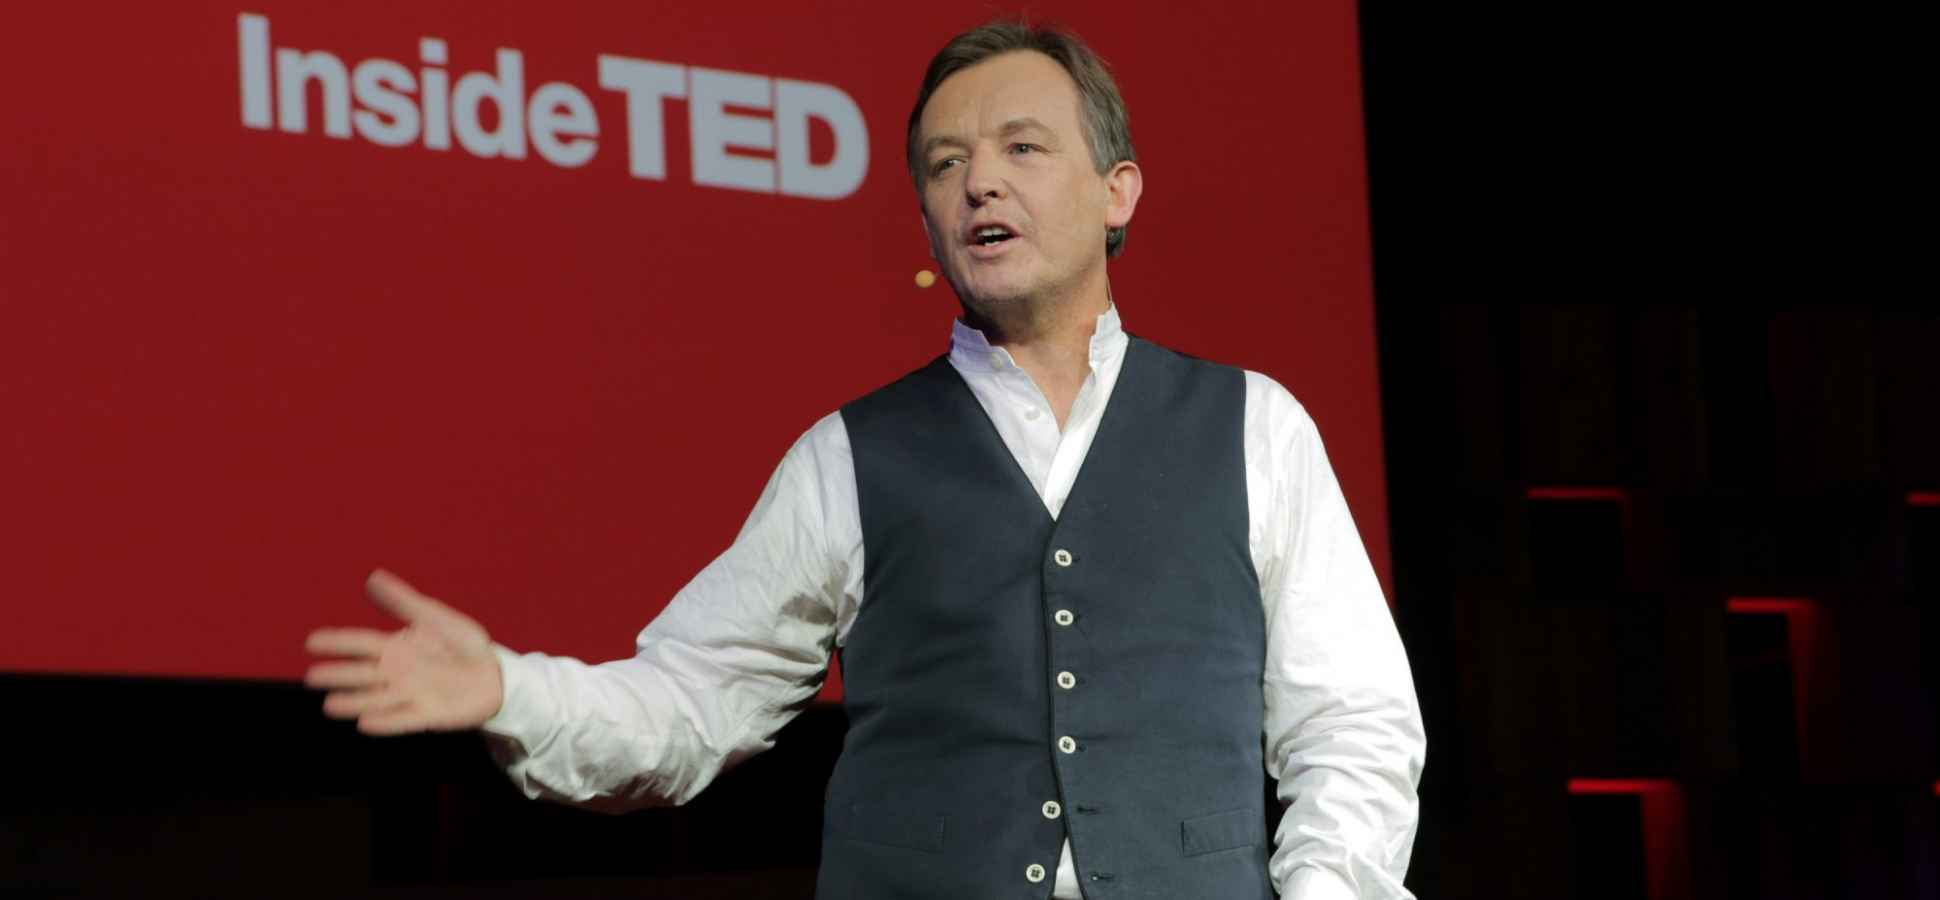 7 Tricks to Master Public Speaking, According to the Guy Who Runs TED Talks